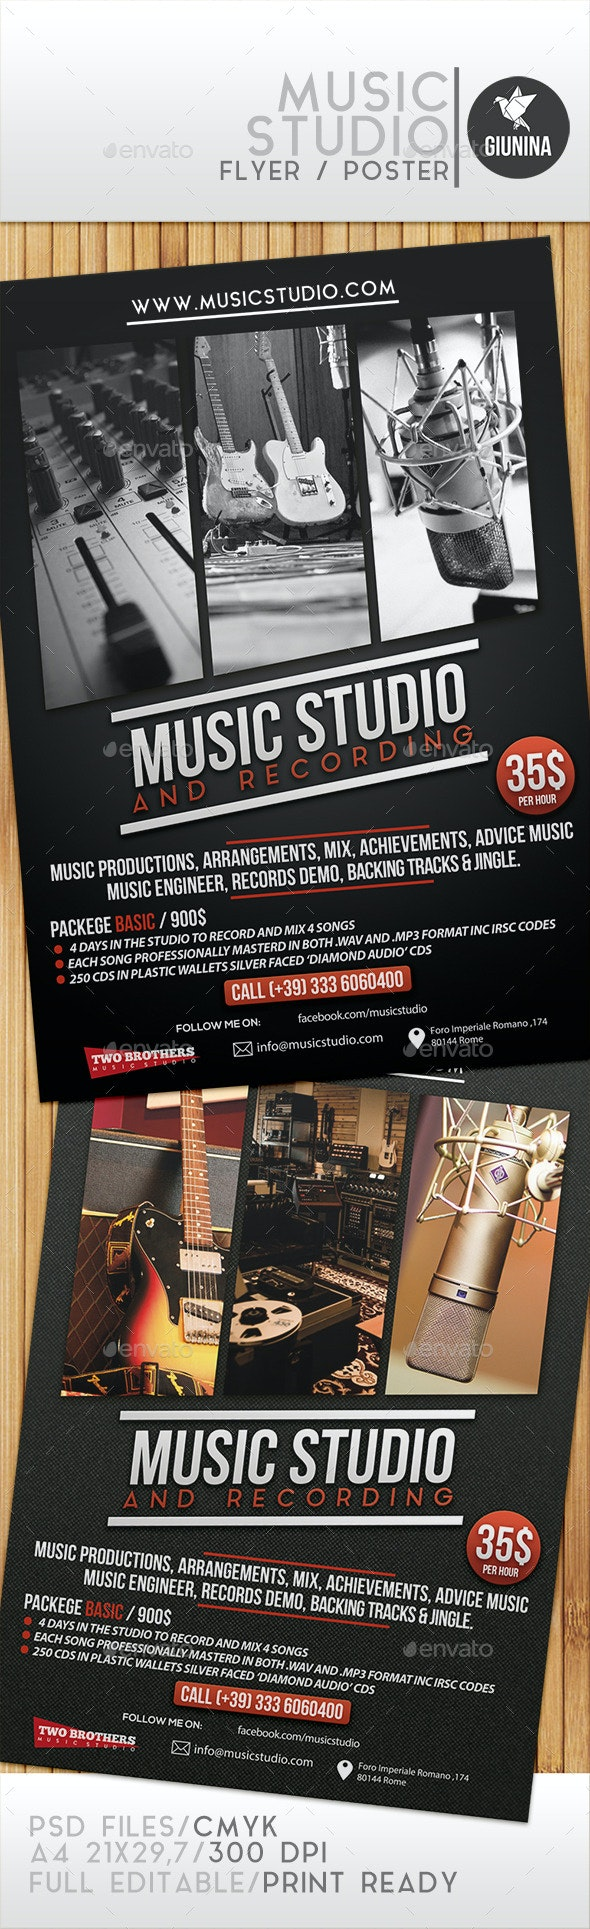 Music Studio Flyer/Poster - Commerce Flyers